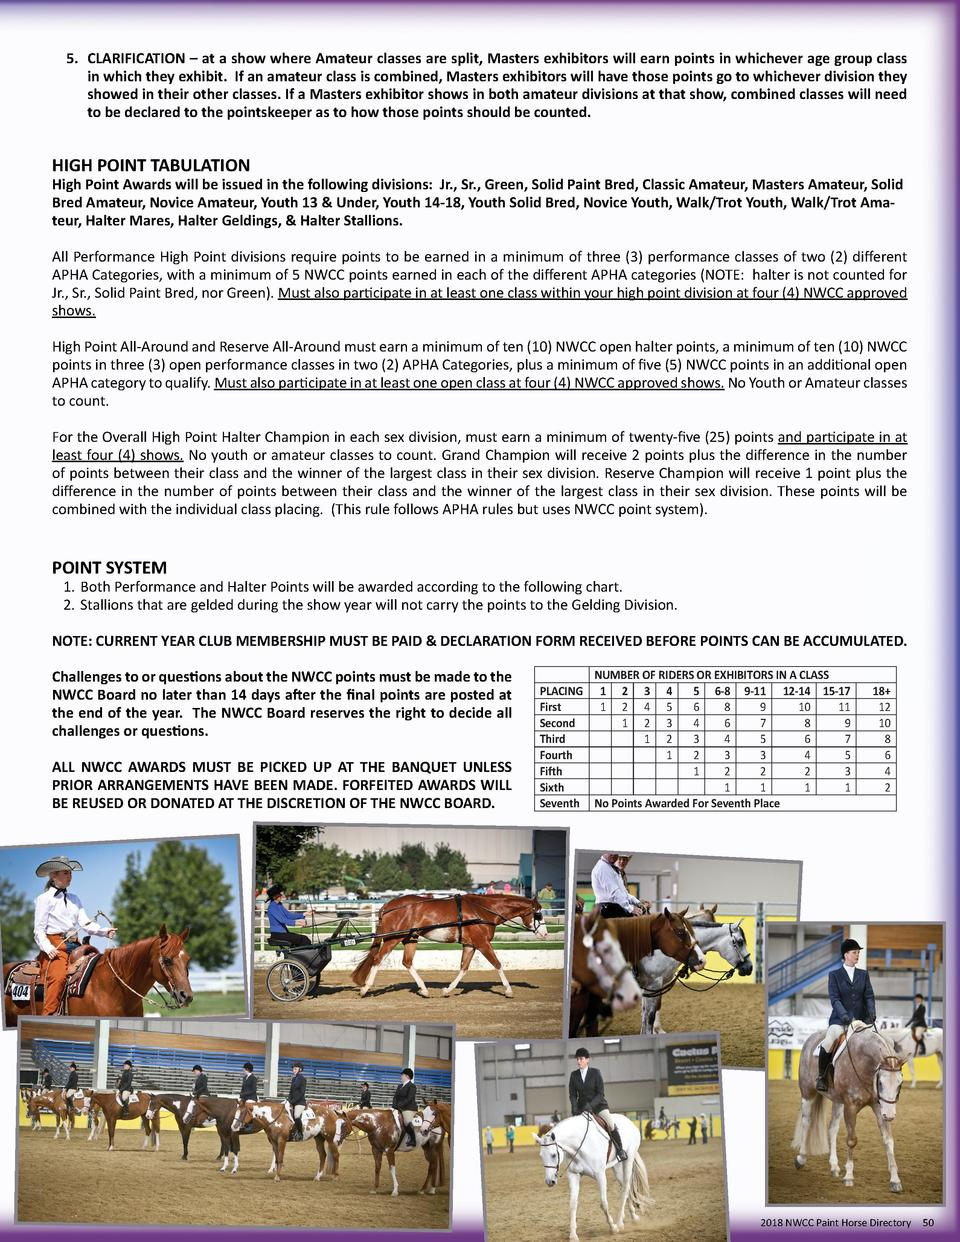 5.  CLARIFICATION     at a show where Amateur classes are split, Masters exhibitors will earn points in whichever age grou...